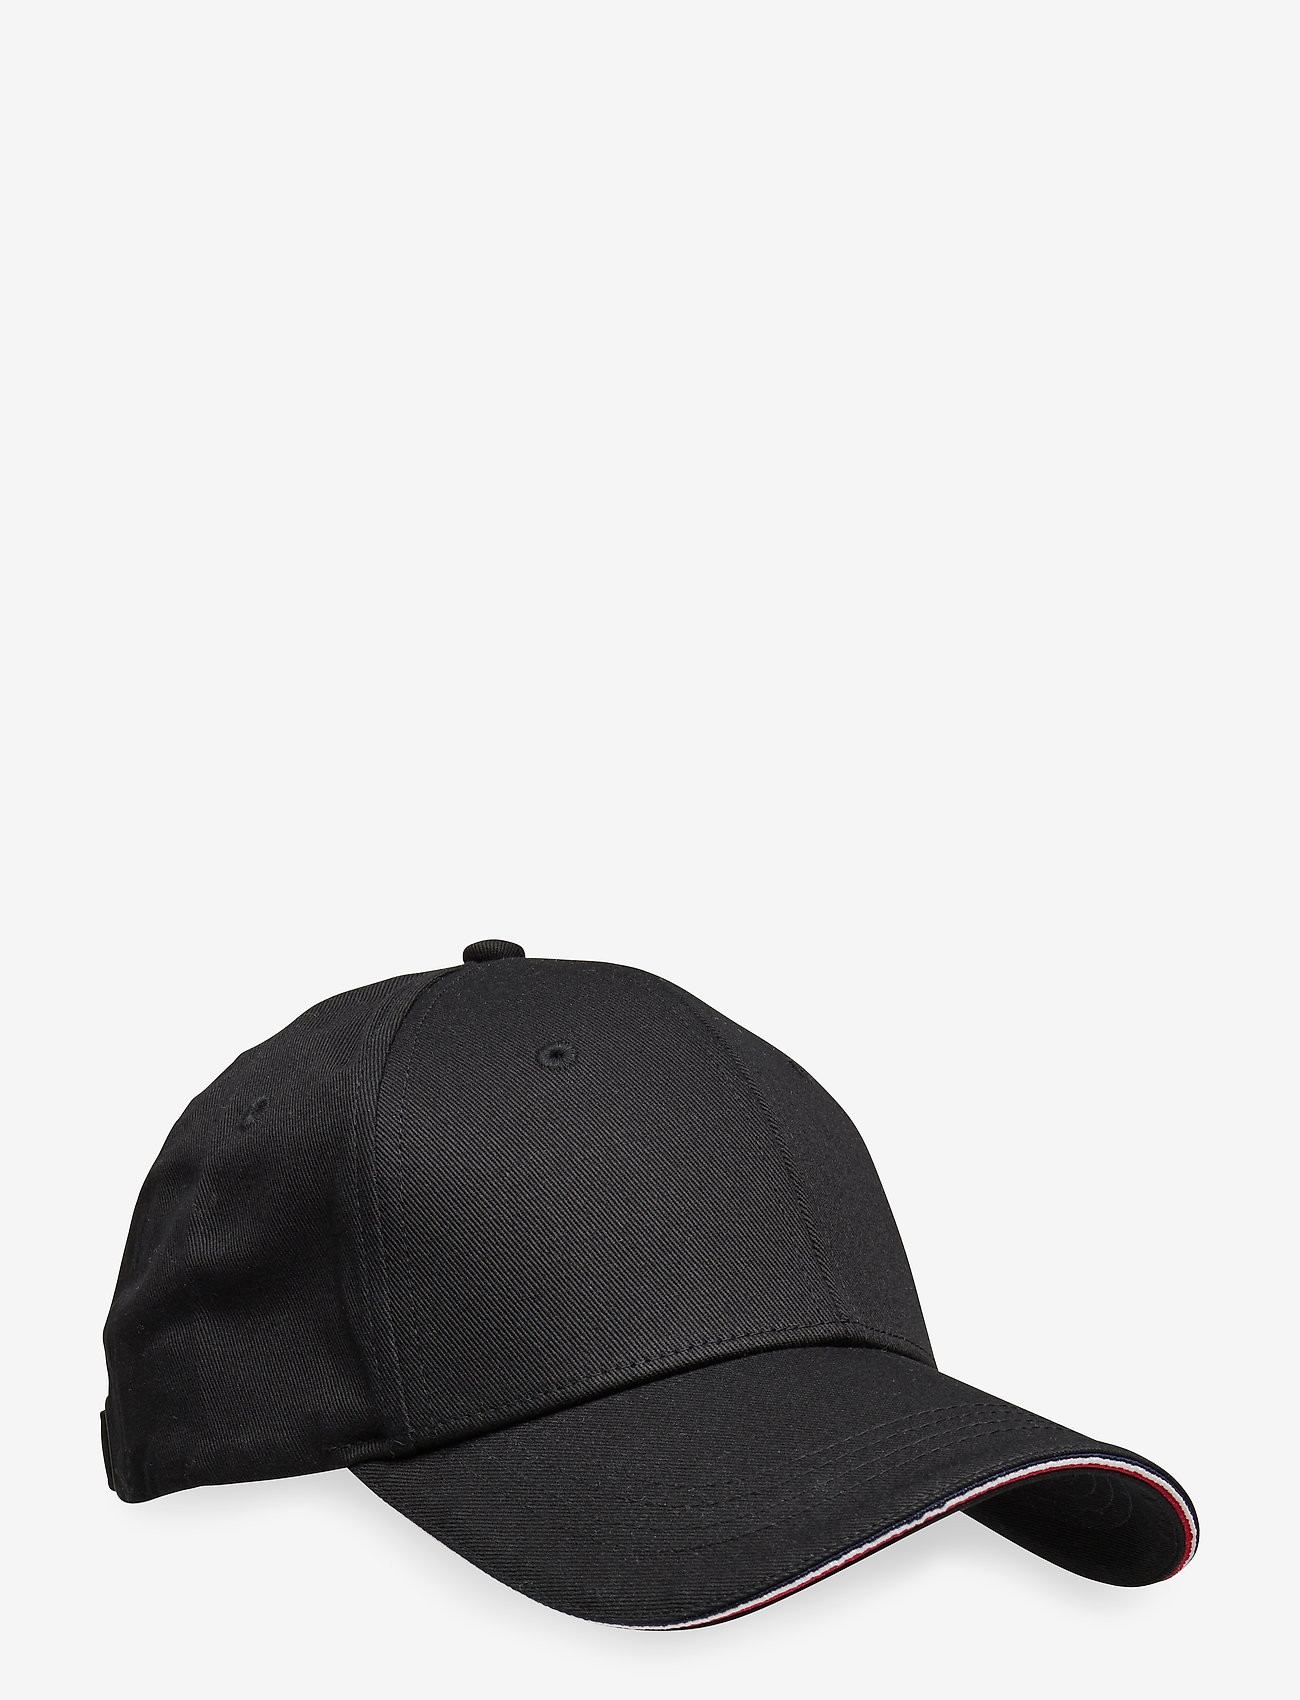 Tommy Hilfiger - ELEVATED CORPORATE CAP - casquettes - black - 0